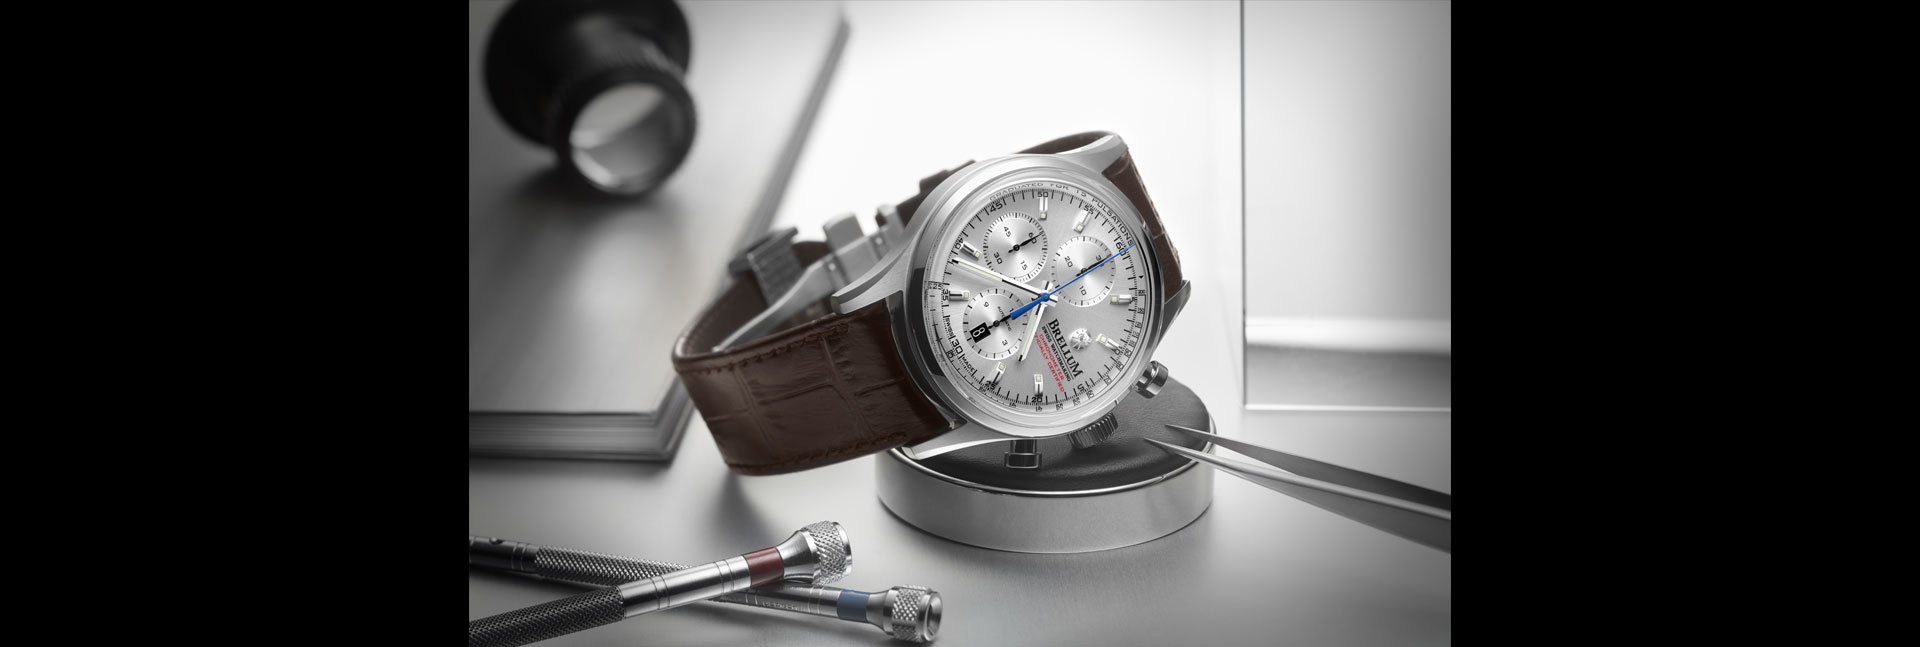 Brellum-watches-diaporama